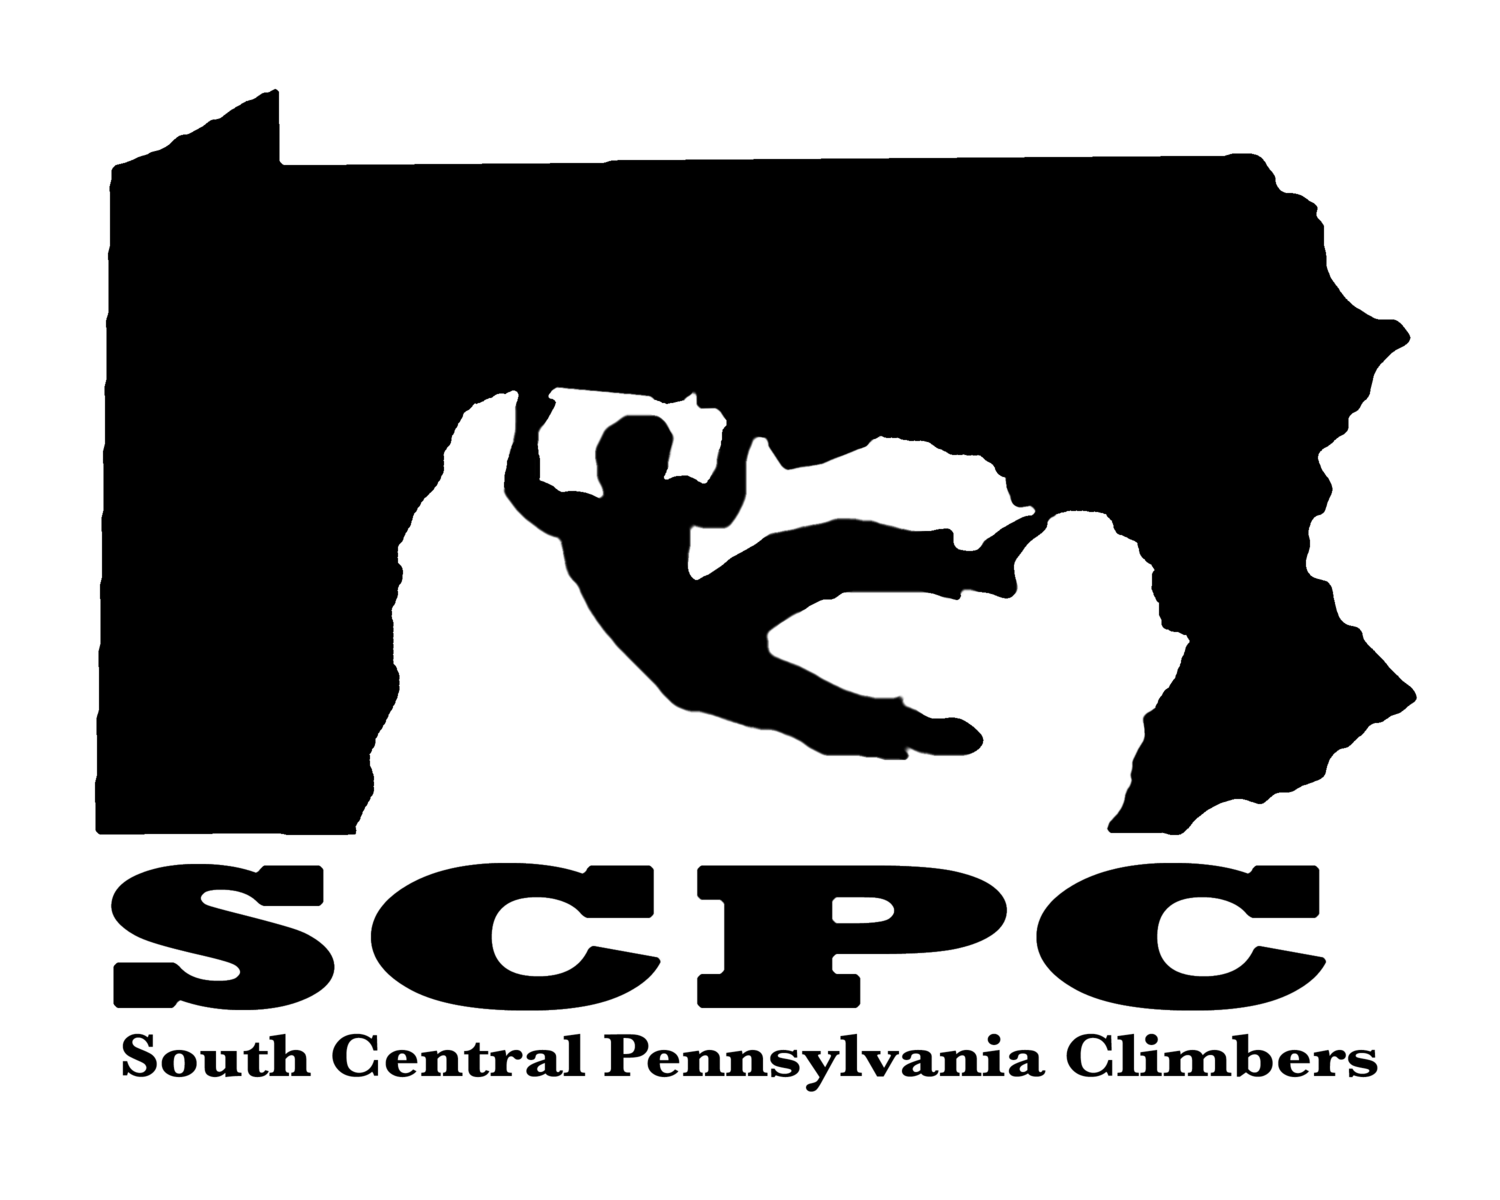 South Central Pennsylvania Climbers